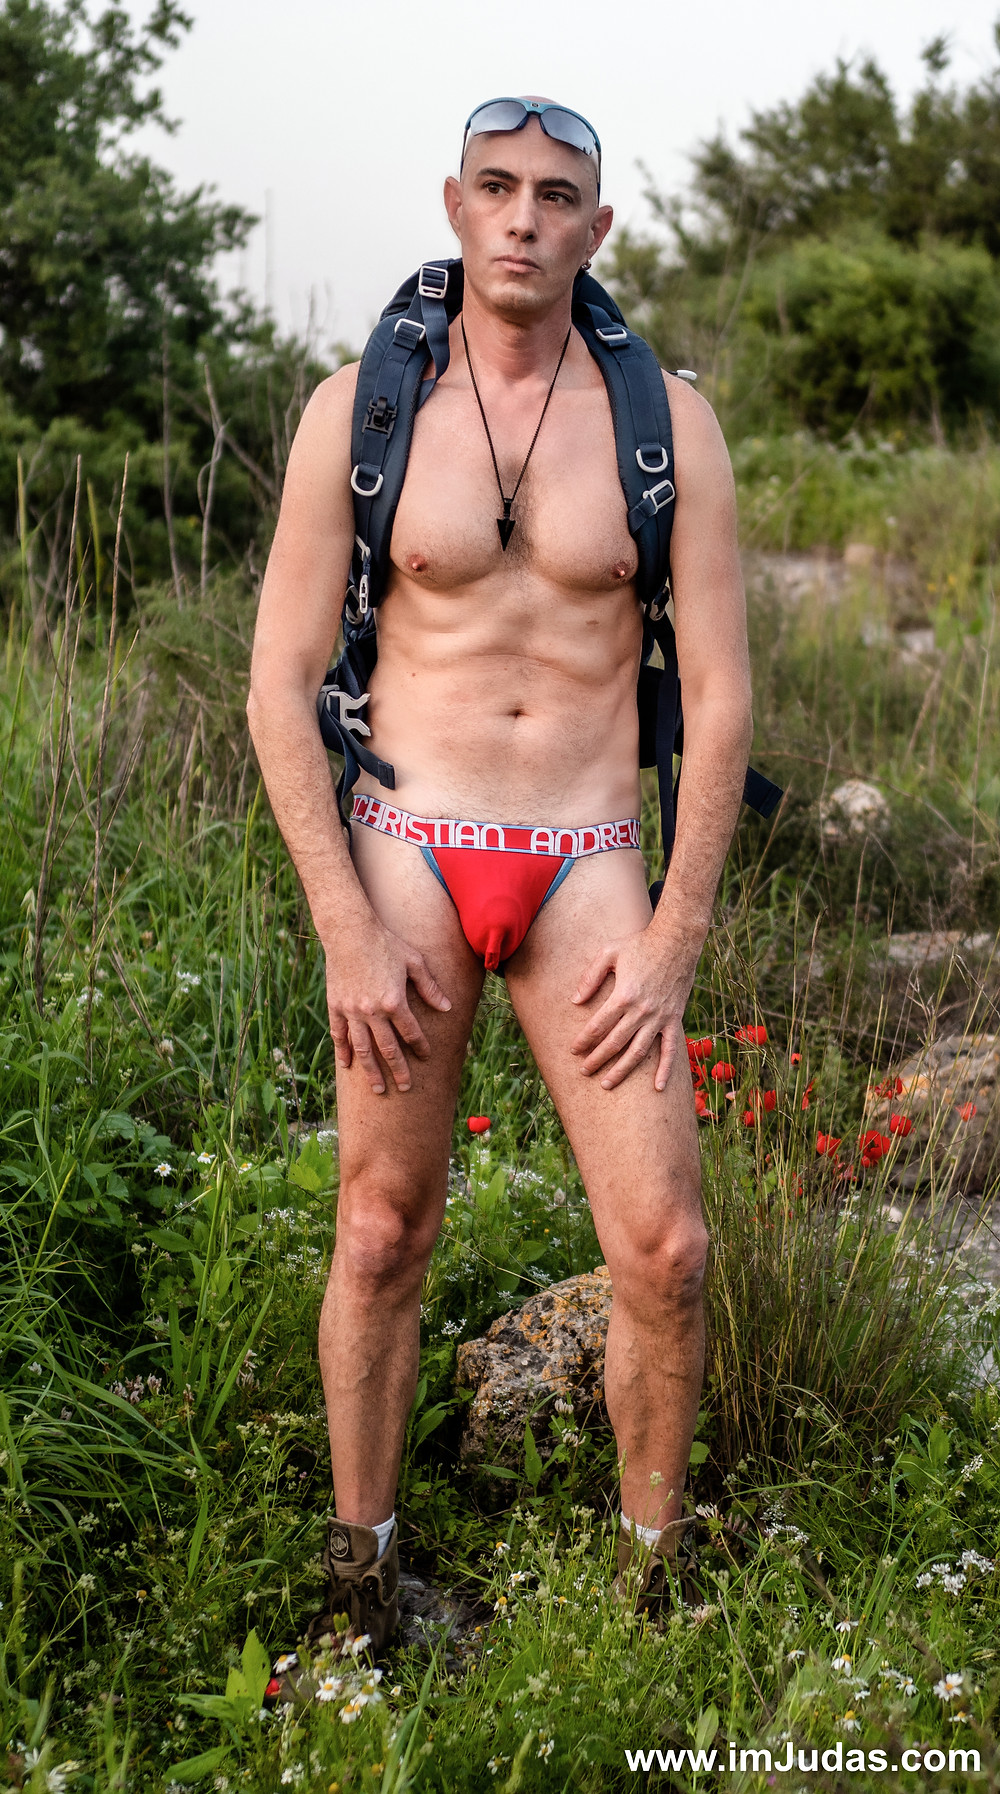 Hiking in my read underwear